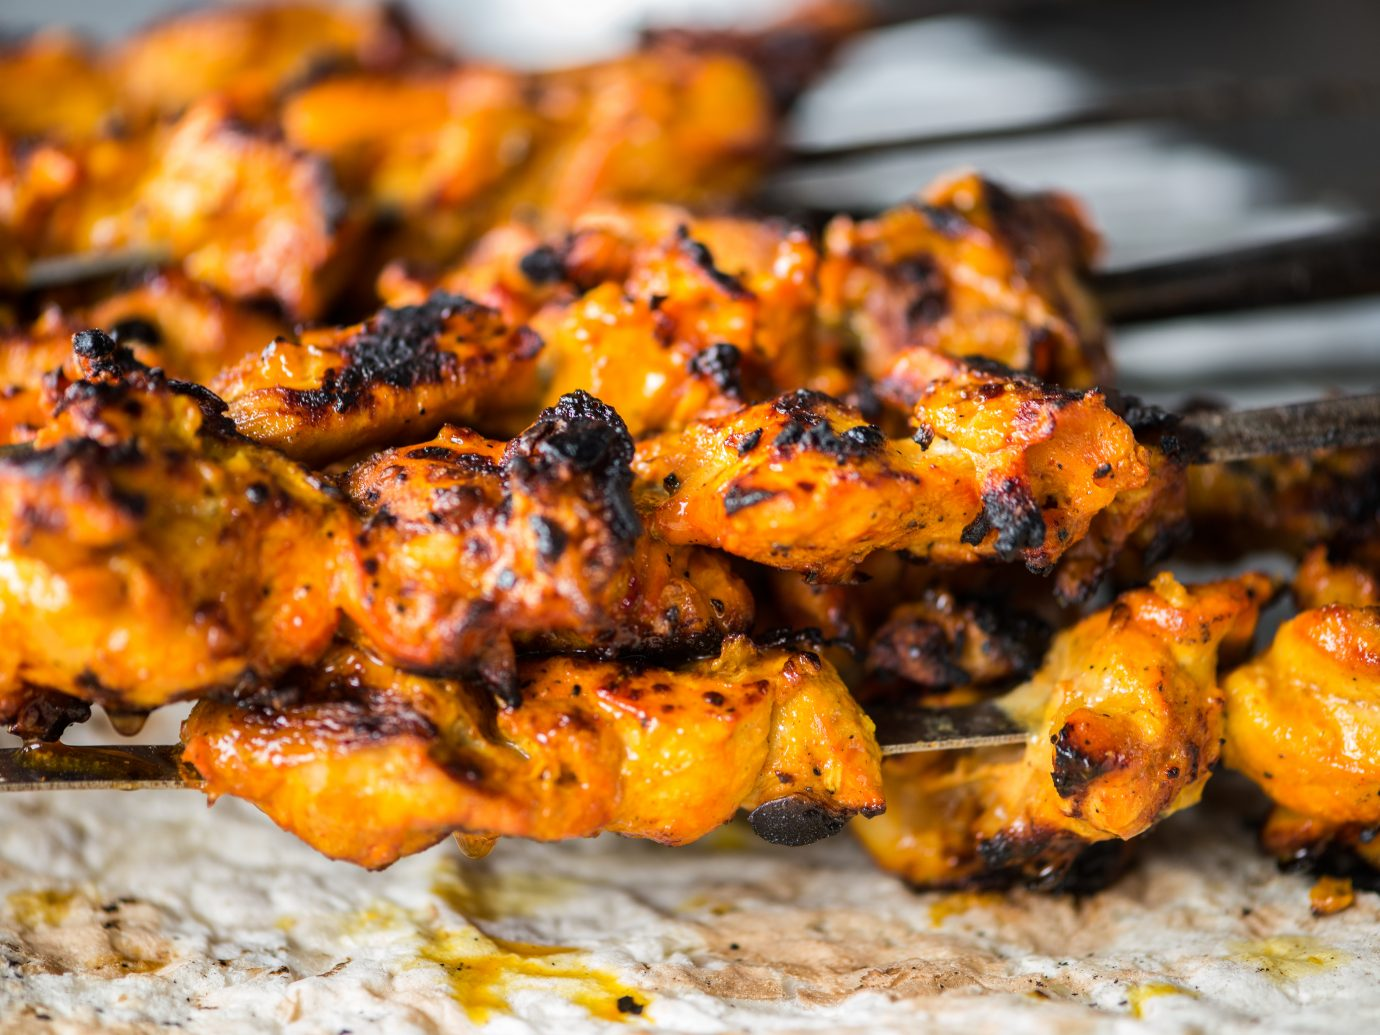 Closeup of freshly grilled chicken tikka masala kebabs on skewers dripping onto a piece of naan flatbread cooked in a Tandoori oven. Dubai, UAE, Middle East, GCC.